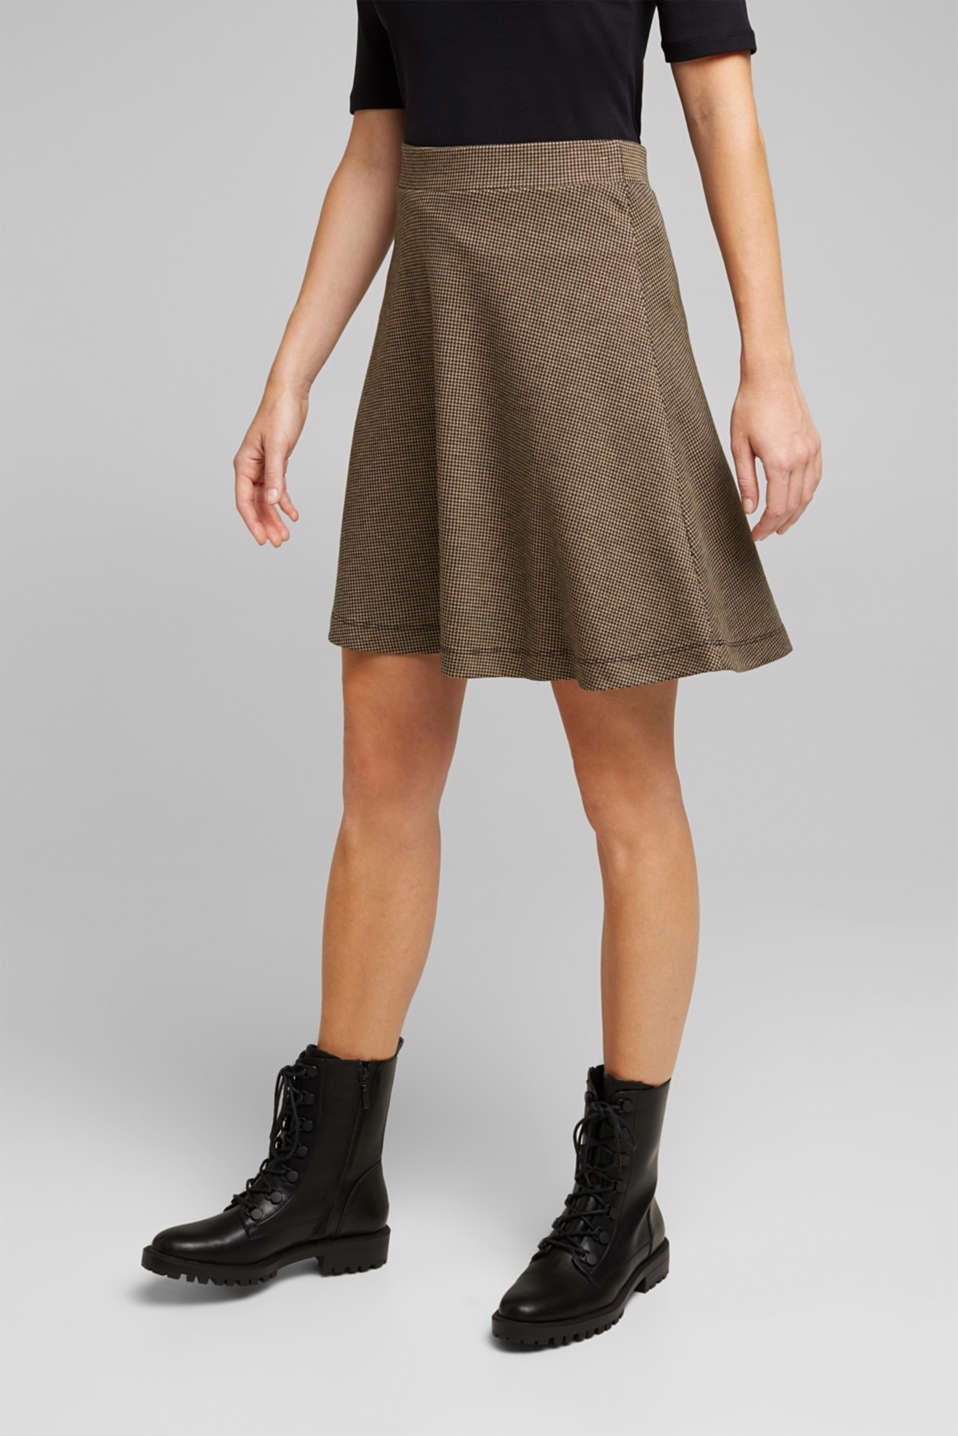 Esprit - Jersey skirt with a houndstooth pattern